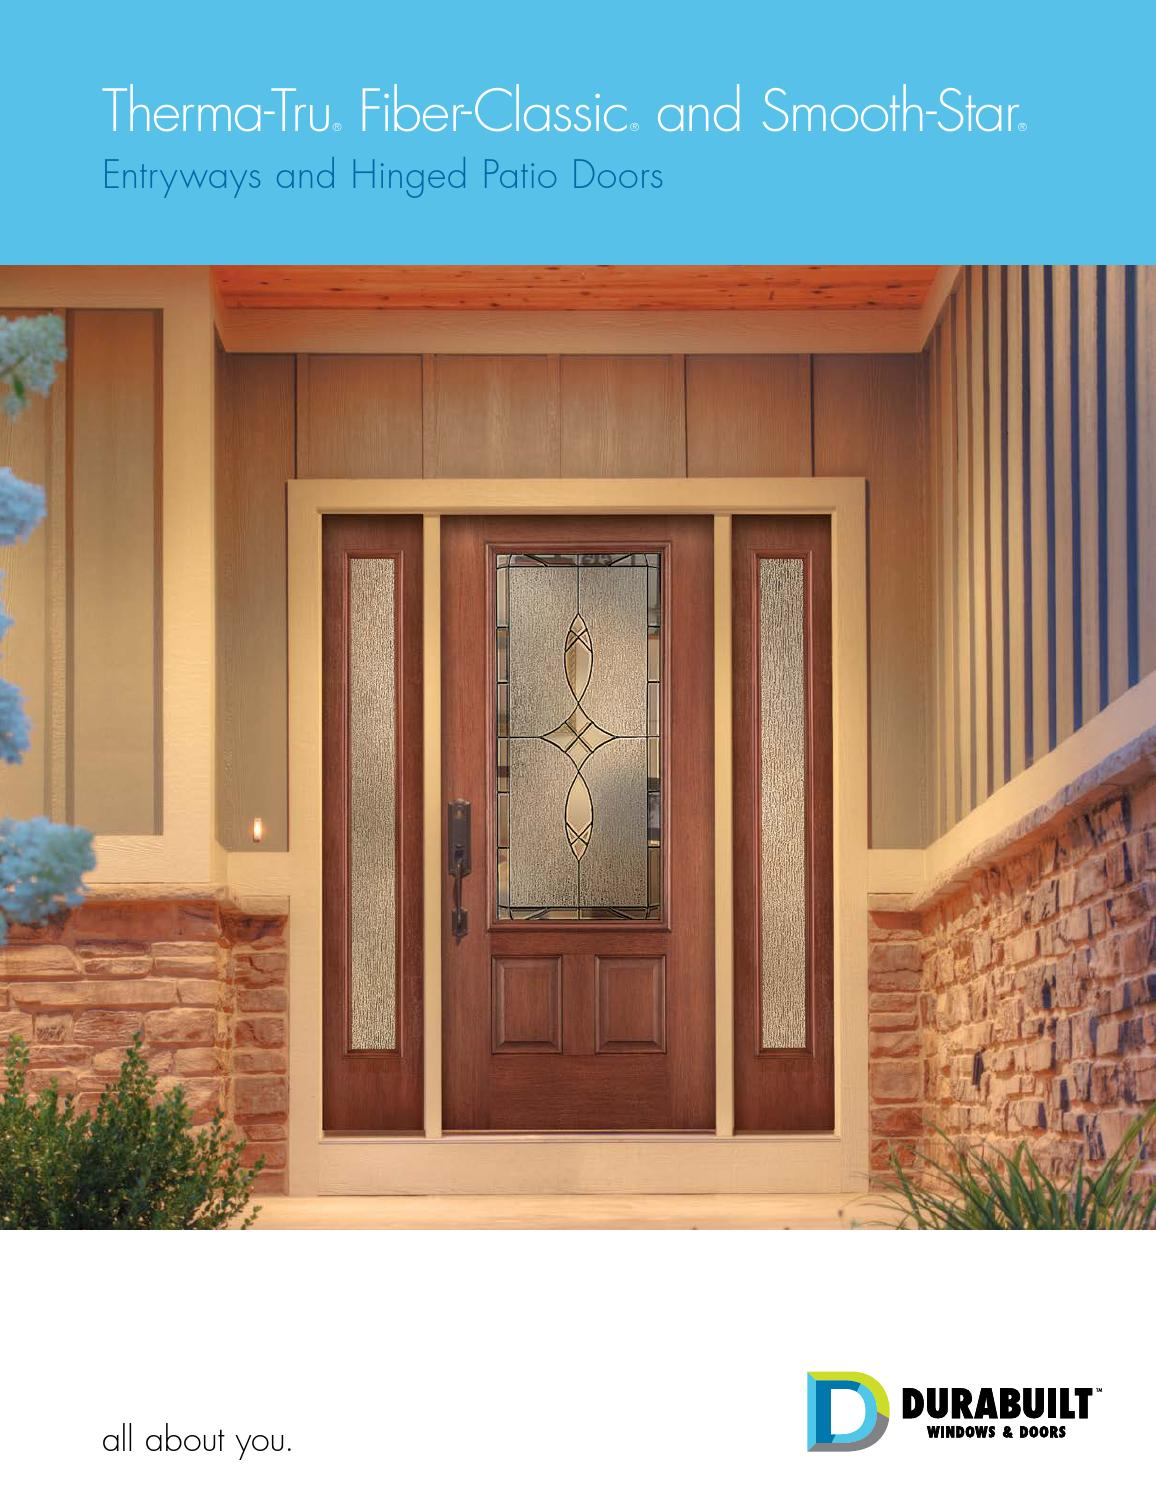 Therma Tru Fiber Classic And Smooth Star Entryways By DurabuiltWindows    Issuu